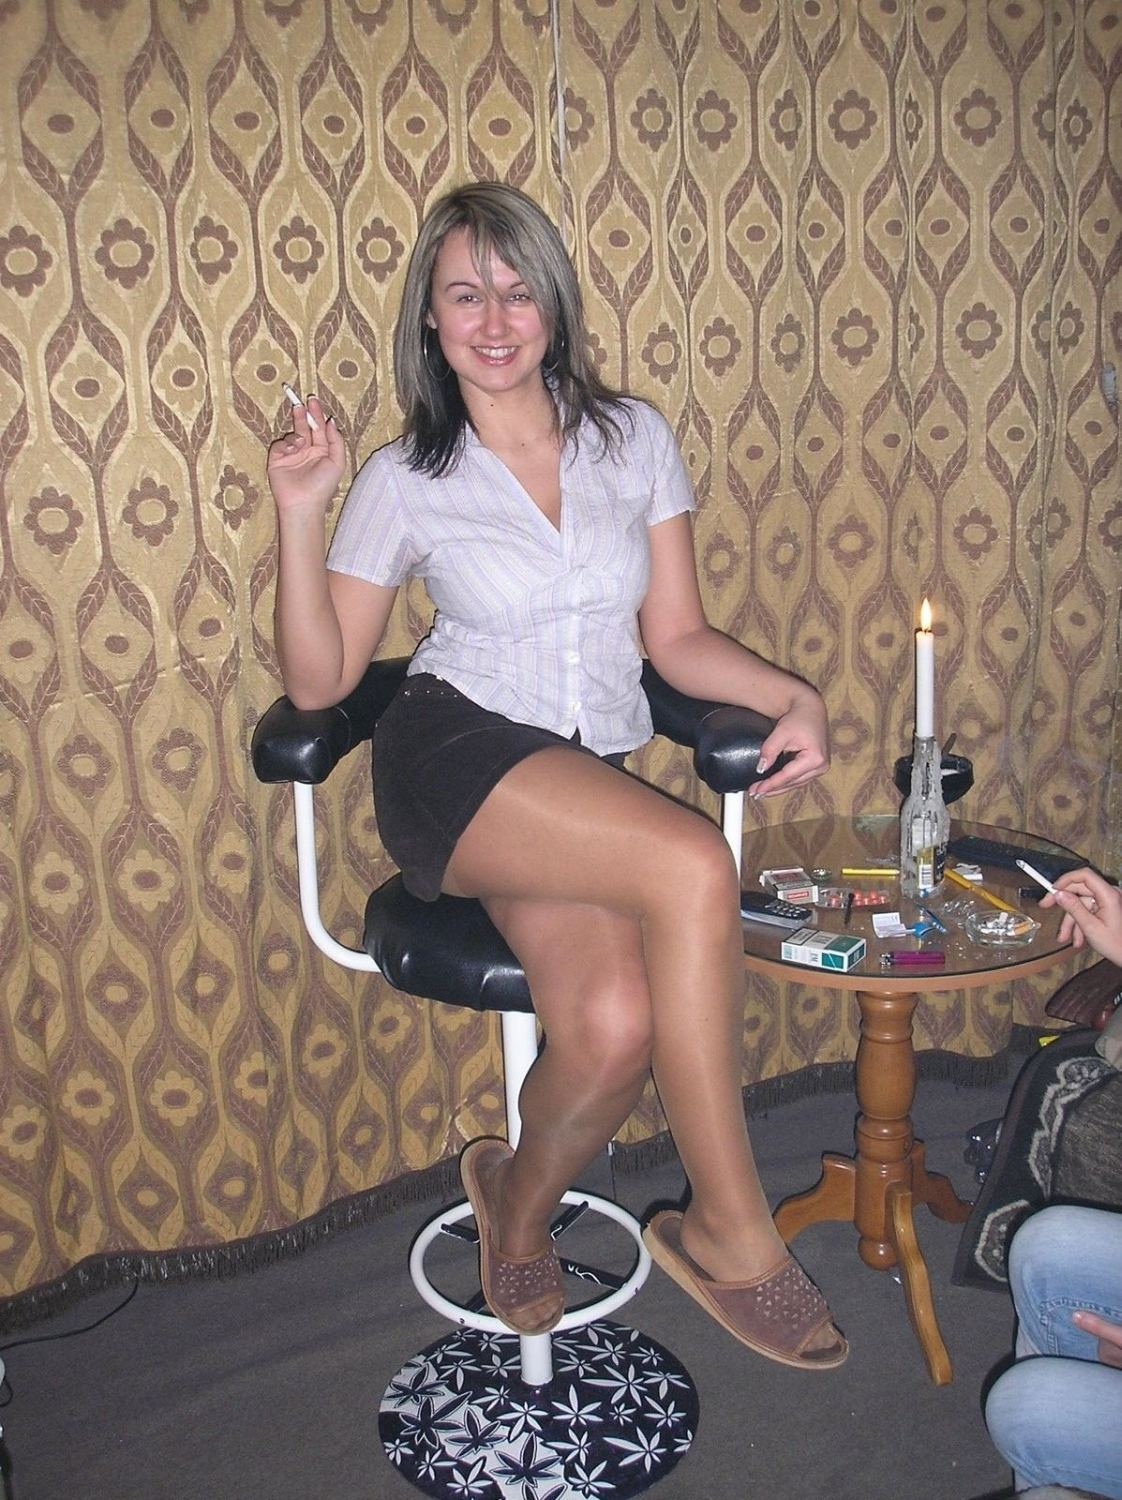 Pantyhose Fans: 40000 Pantyhose Fans on facebook